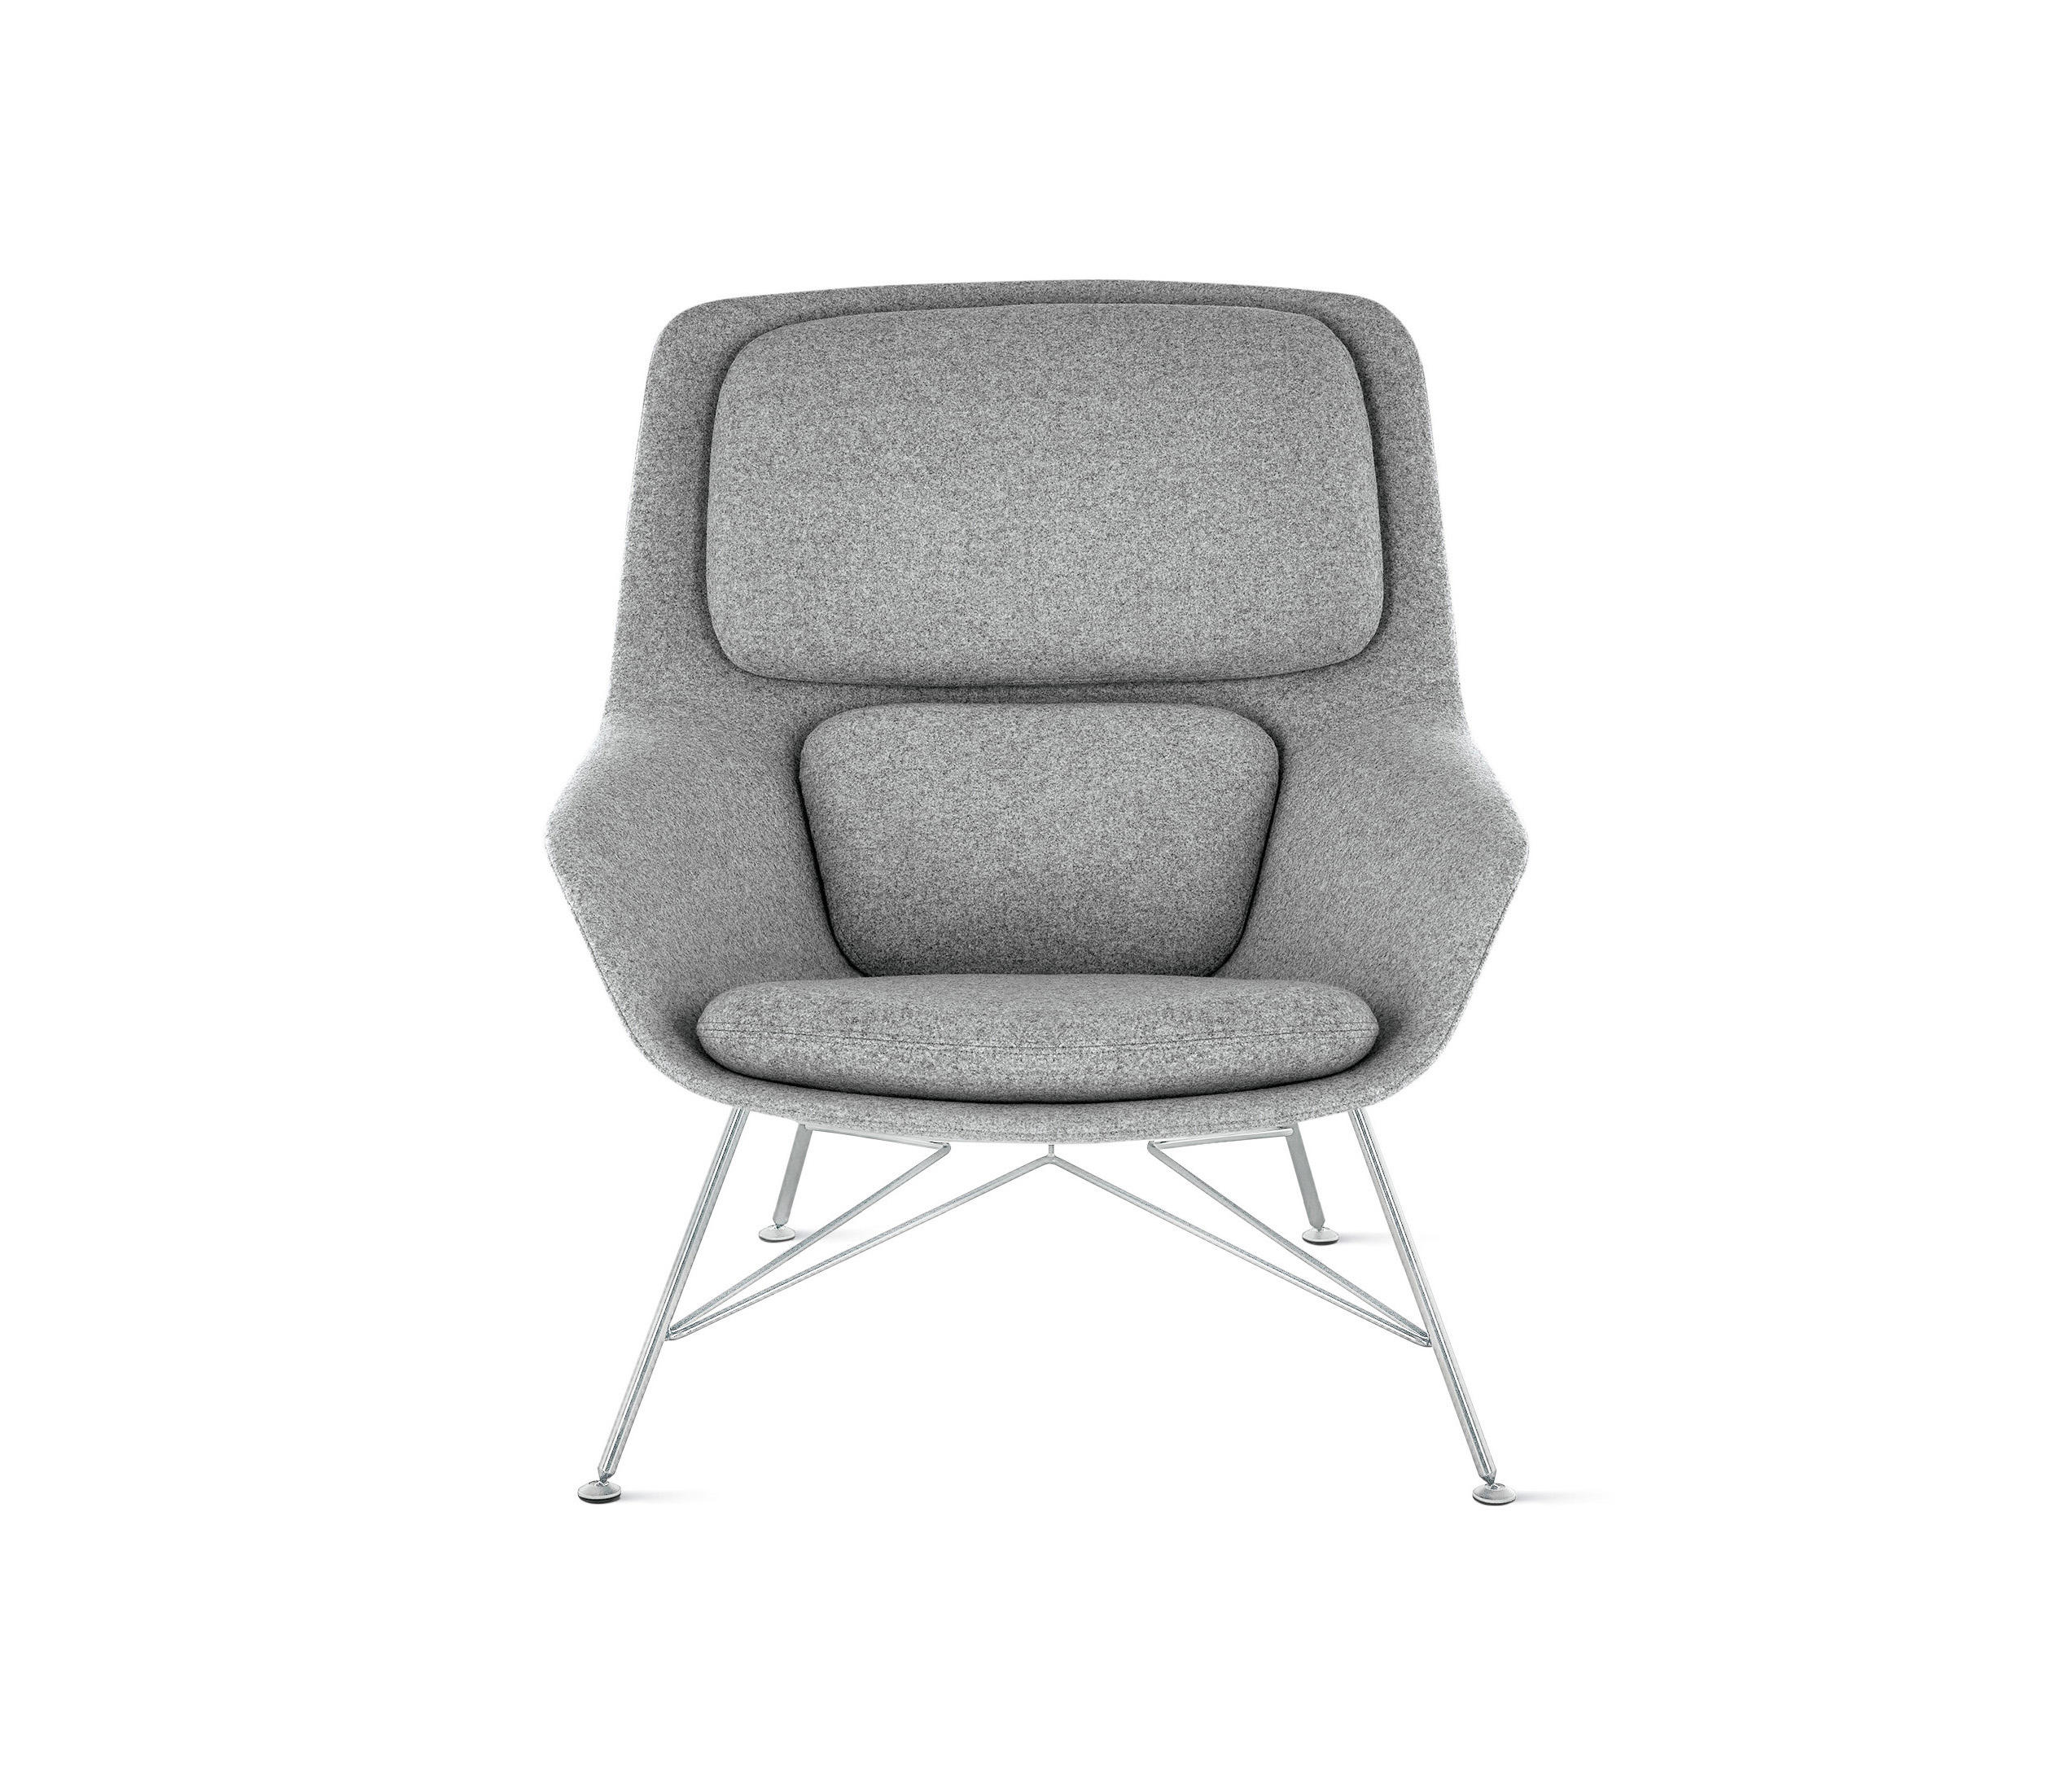 chair design within reach stair lift striad mid back lounge chairs from